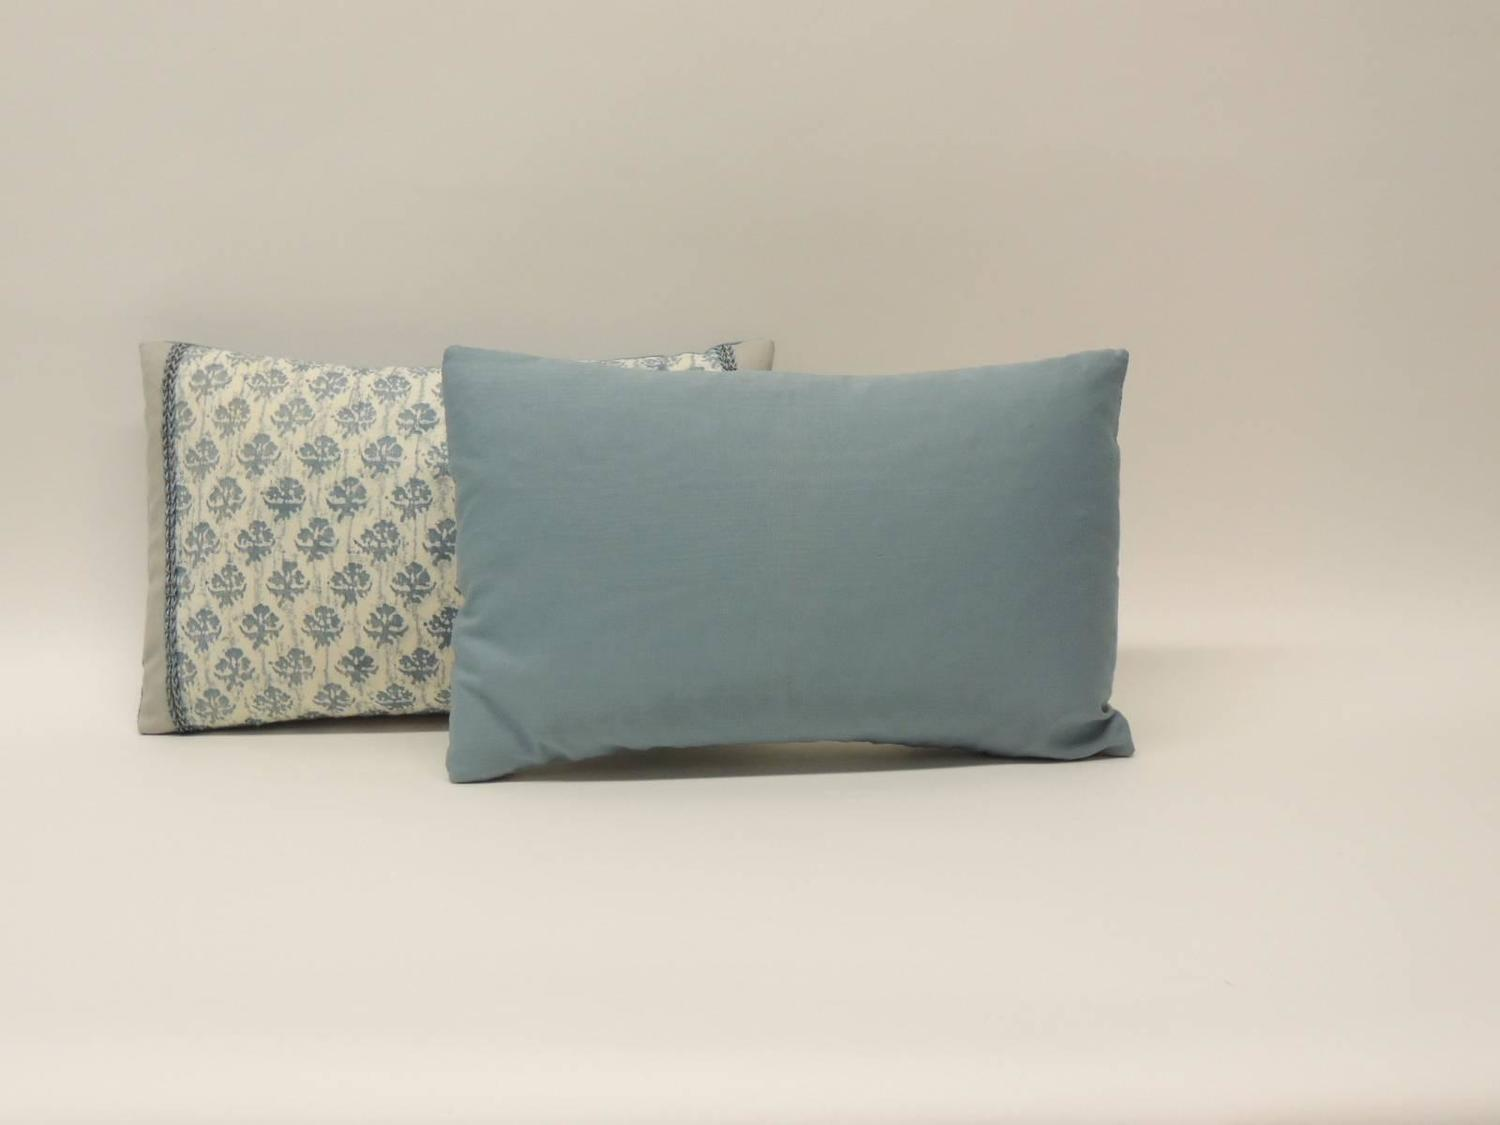 blue and white fortuny lumbar decorative pillows for sale at 1stdibs